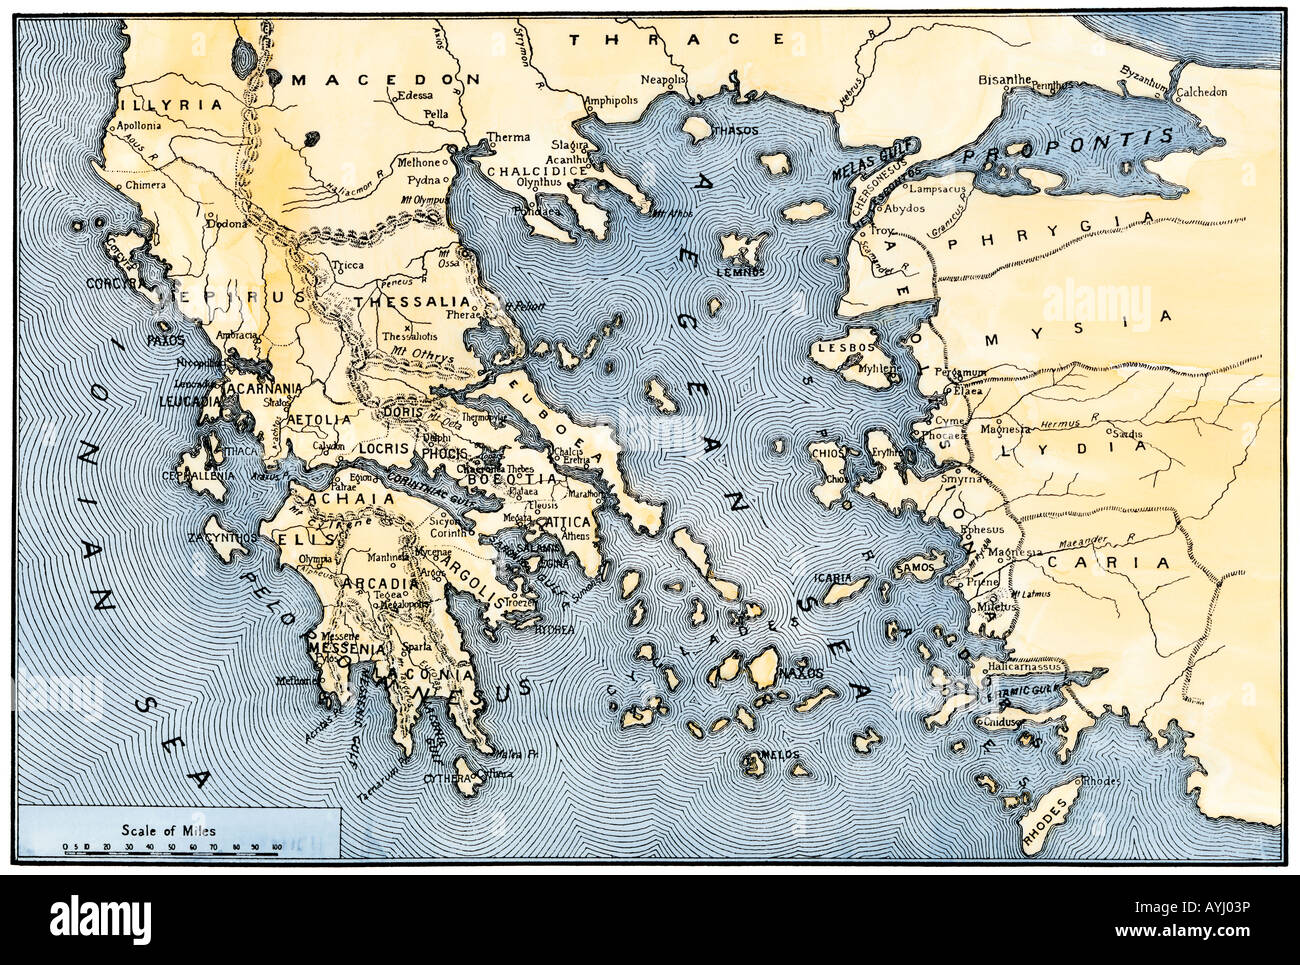 Map of ancient cities unlimited images wallpaper hd pictures map of ancient greeks 4k pictures 4k pictures full hq wallpaper argos amazon com map poster gumiabroncs Choice Image